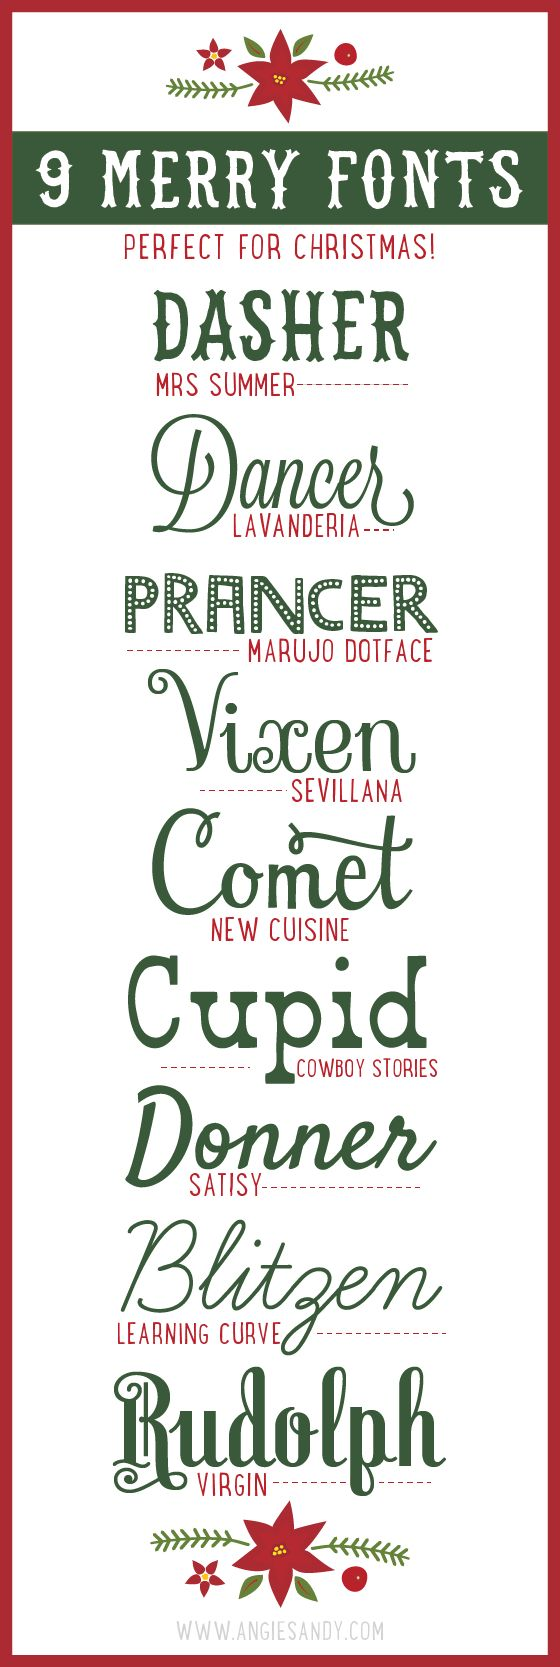 9 Merry Fonts for Christmas Typography, Reindeer and The